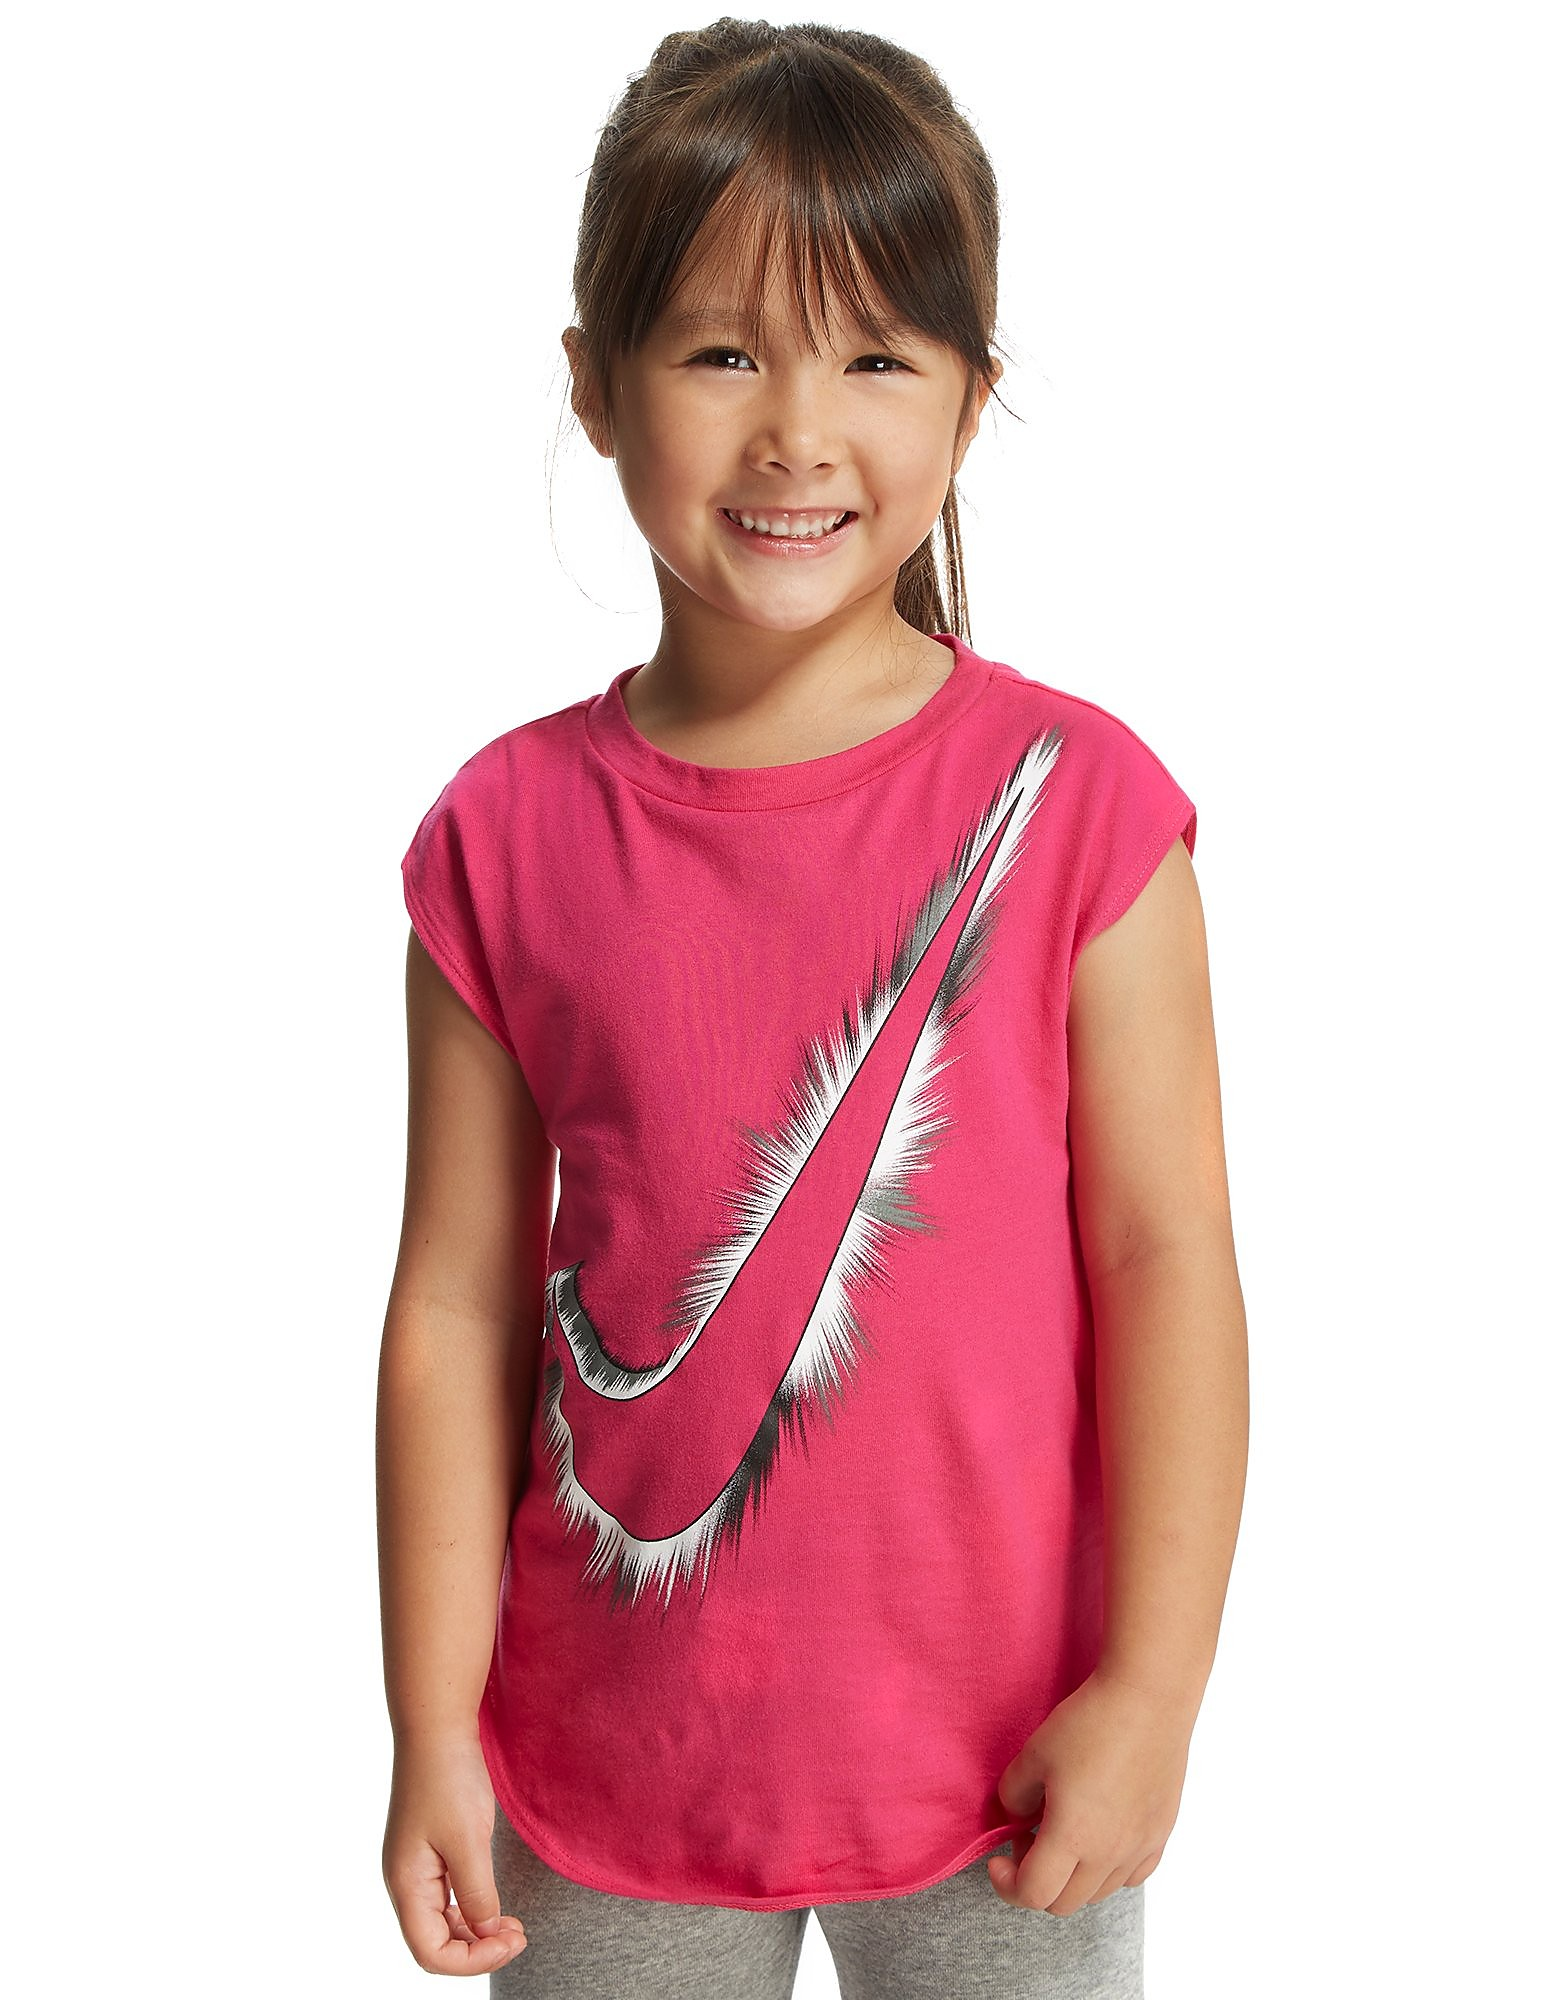 Nike Swoosh T-Shirt Children